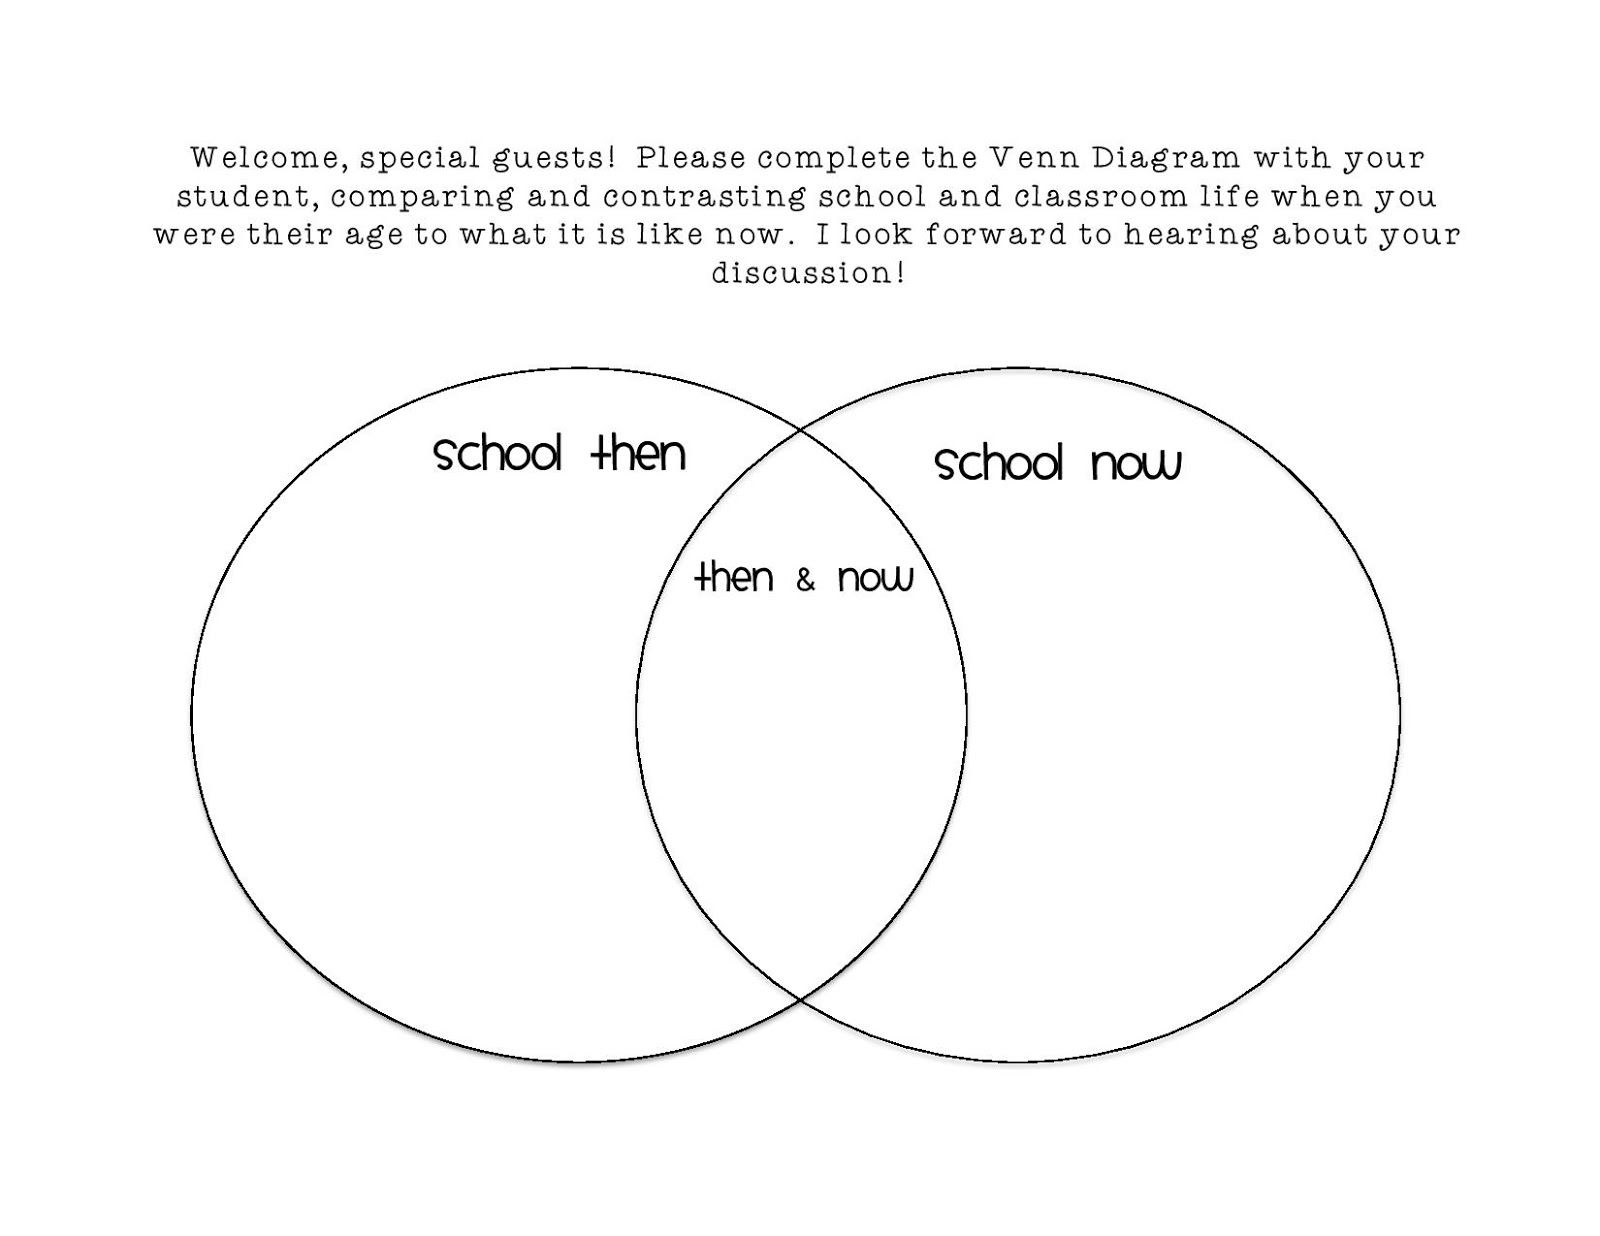 Day venn diagram product wiring diagrams the fashionista teacher grandparents day venn diagram the rh pinterest com grandparents day venn diagram grandparents day venn diagram ccuart Image collections